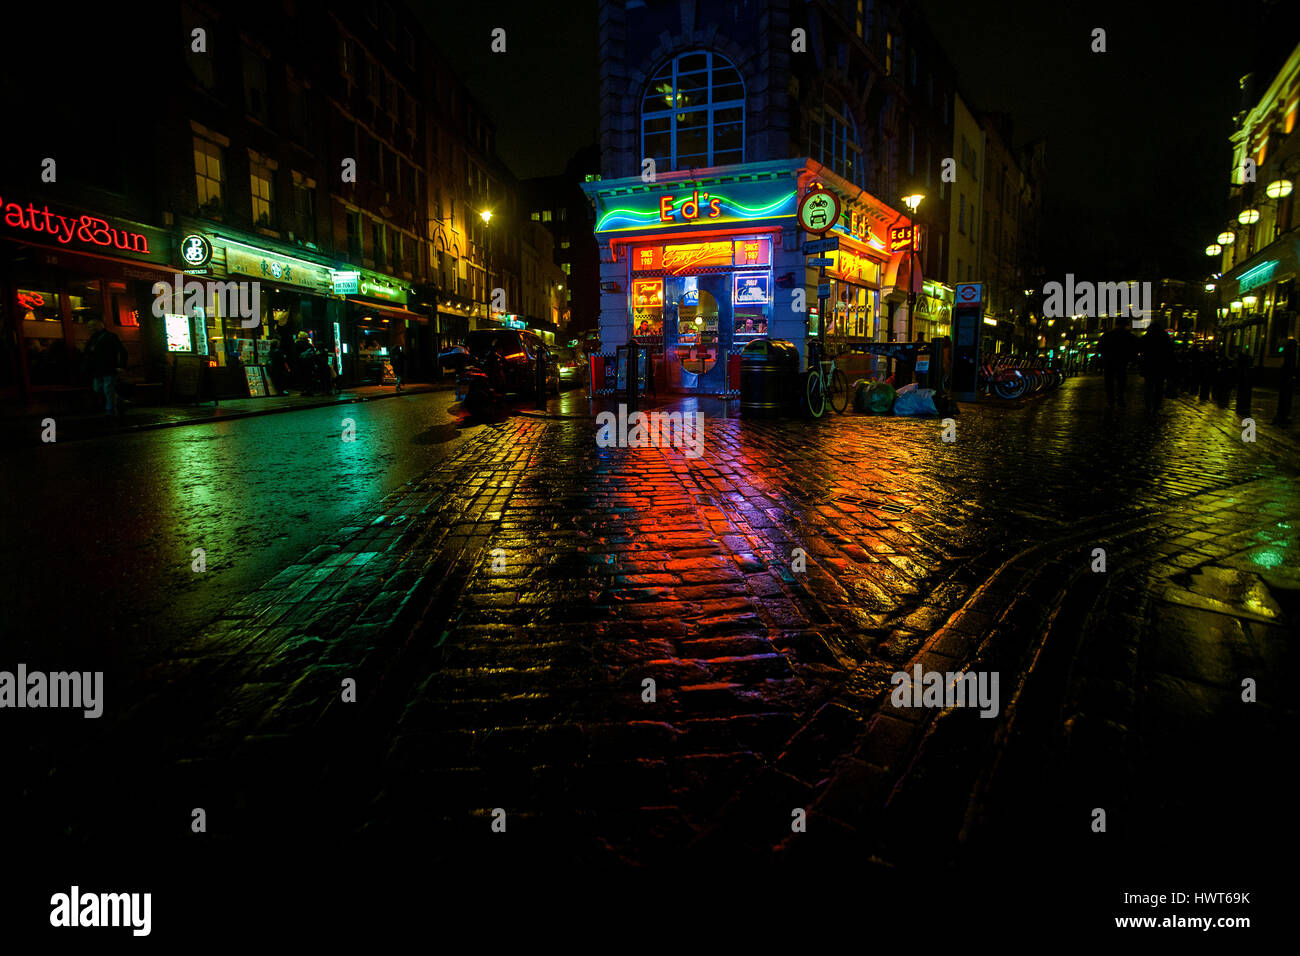 ed's diner neon lights reflected on wet cobbled stone street soho london - Stock Image